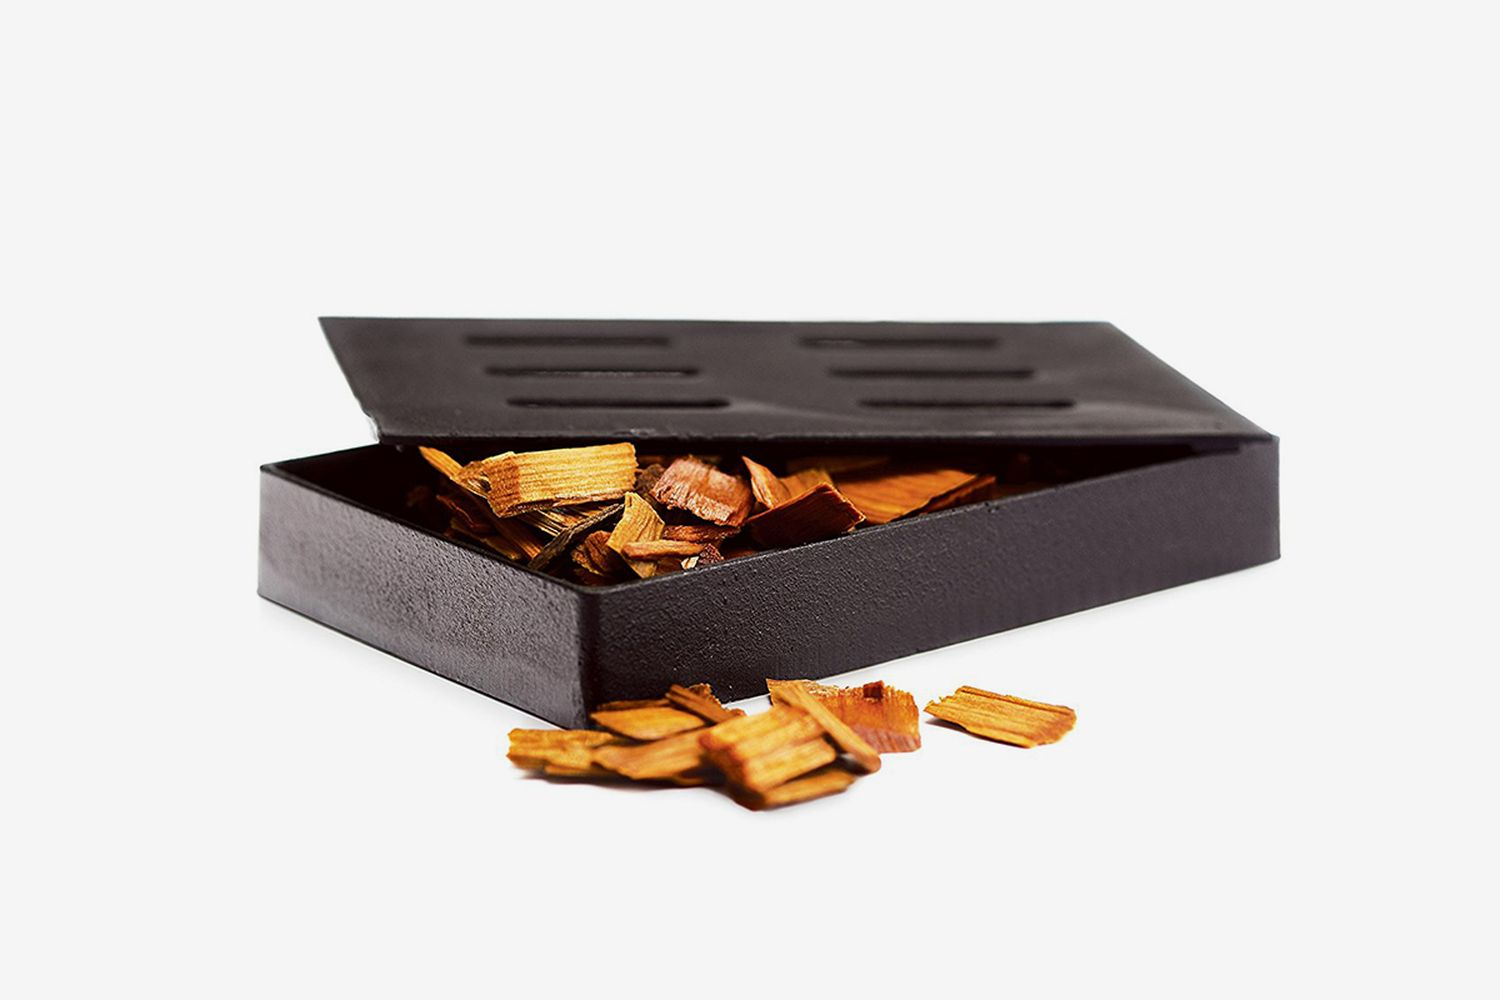 00150 Cast Iron Smoker Box